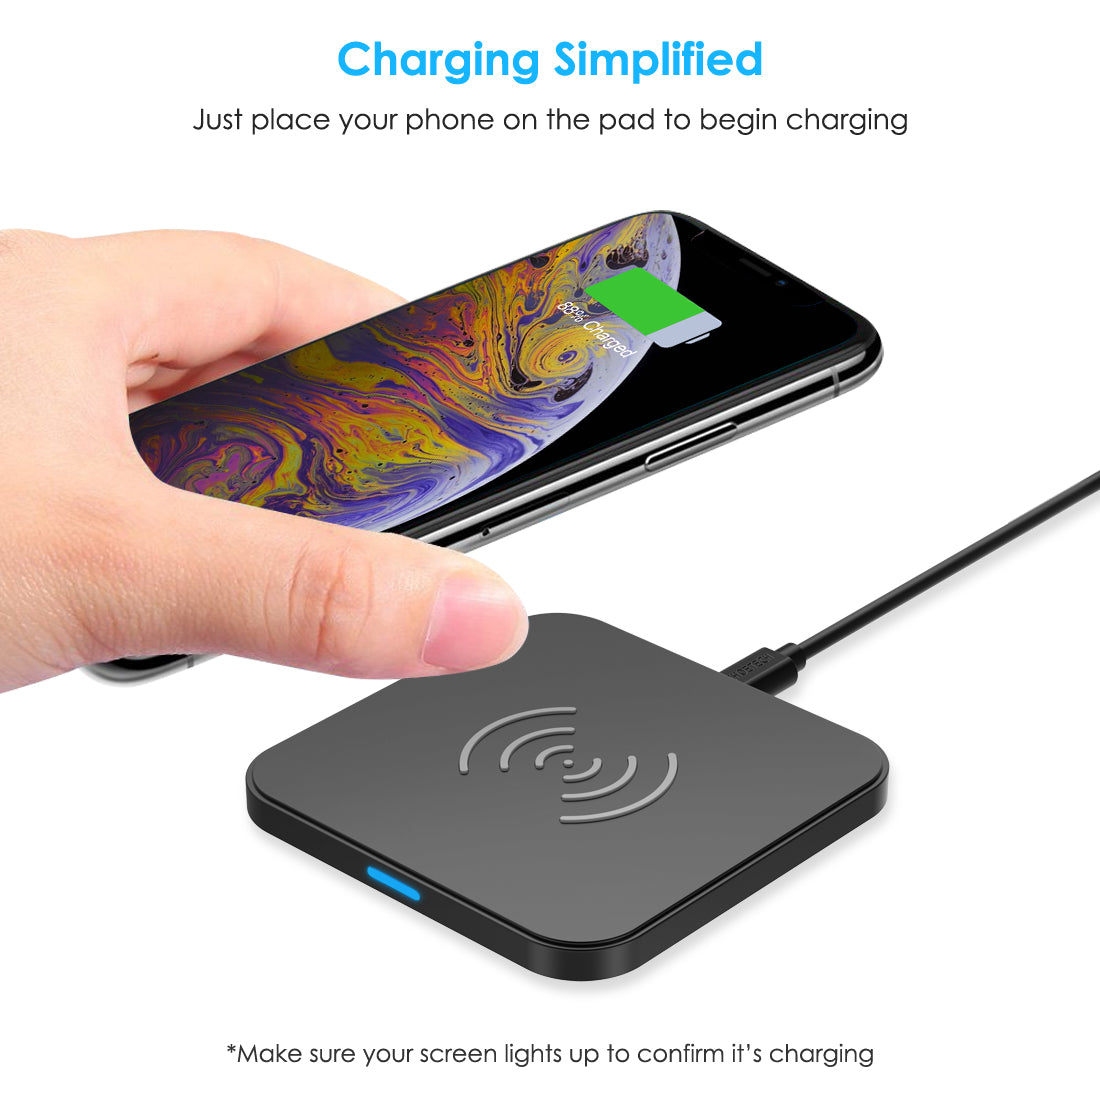 Choetech T511 5W Qi Wireless Charger